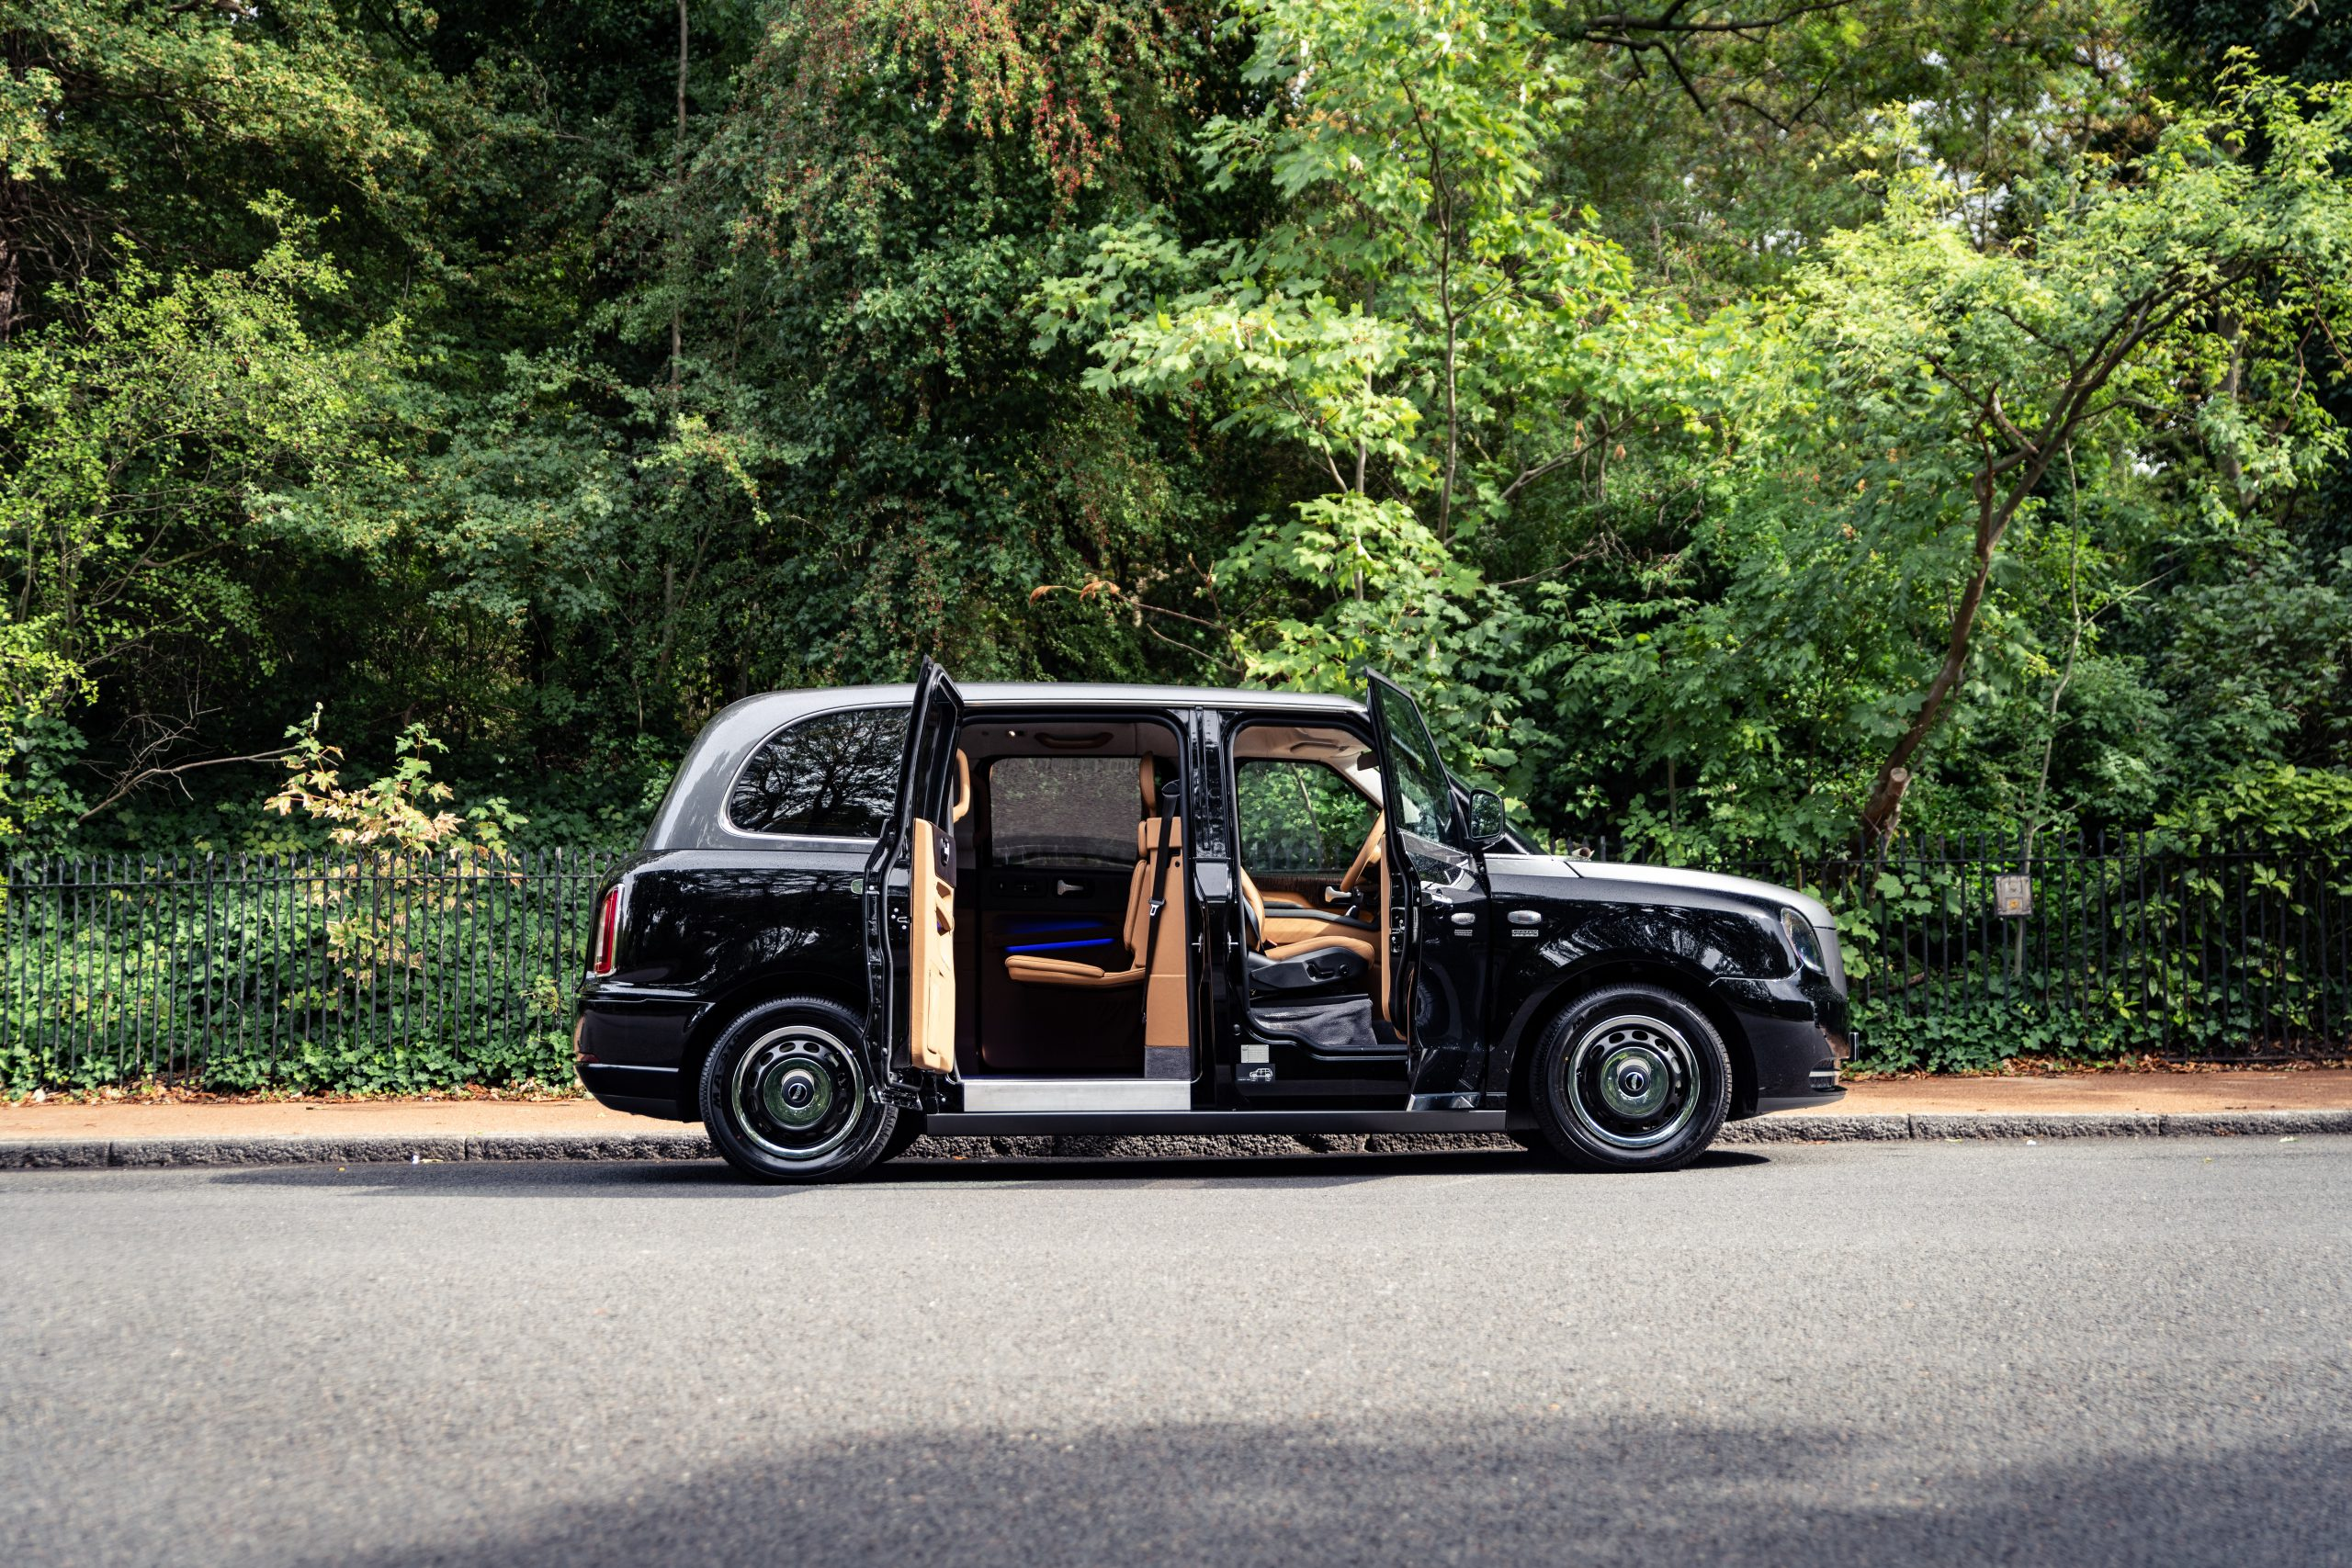 London taxi is transformed into a luxury limo